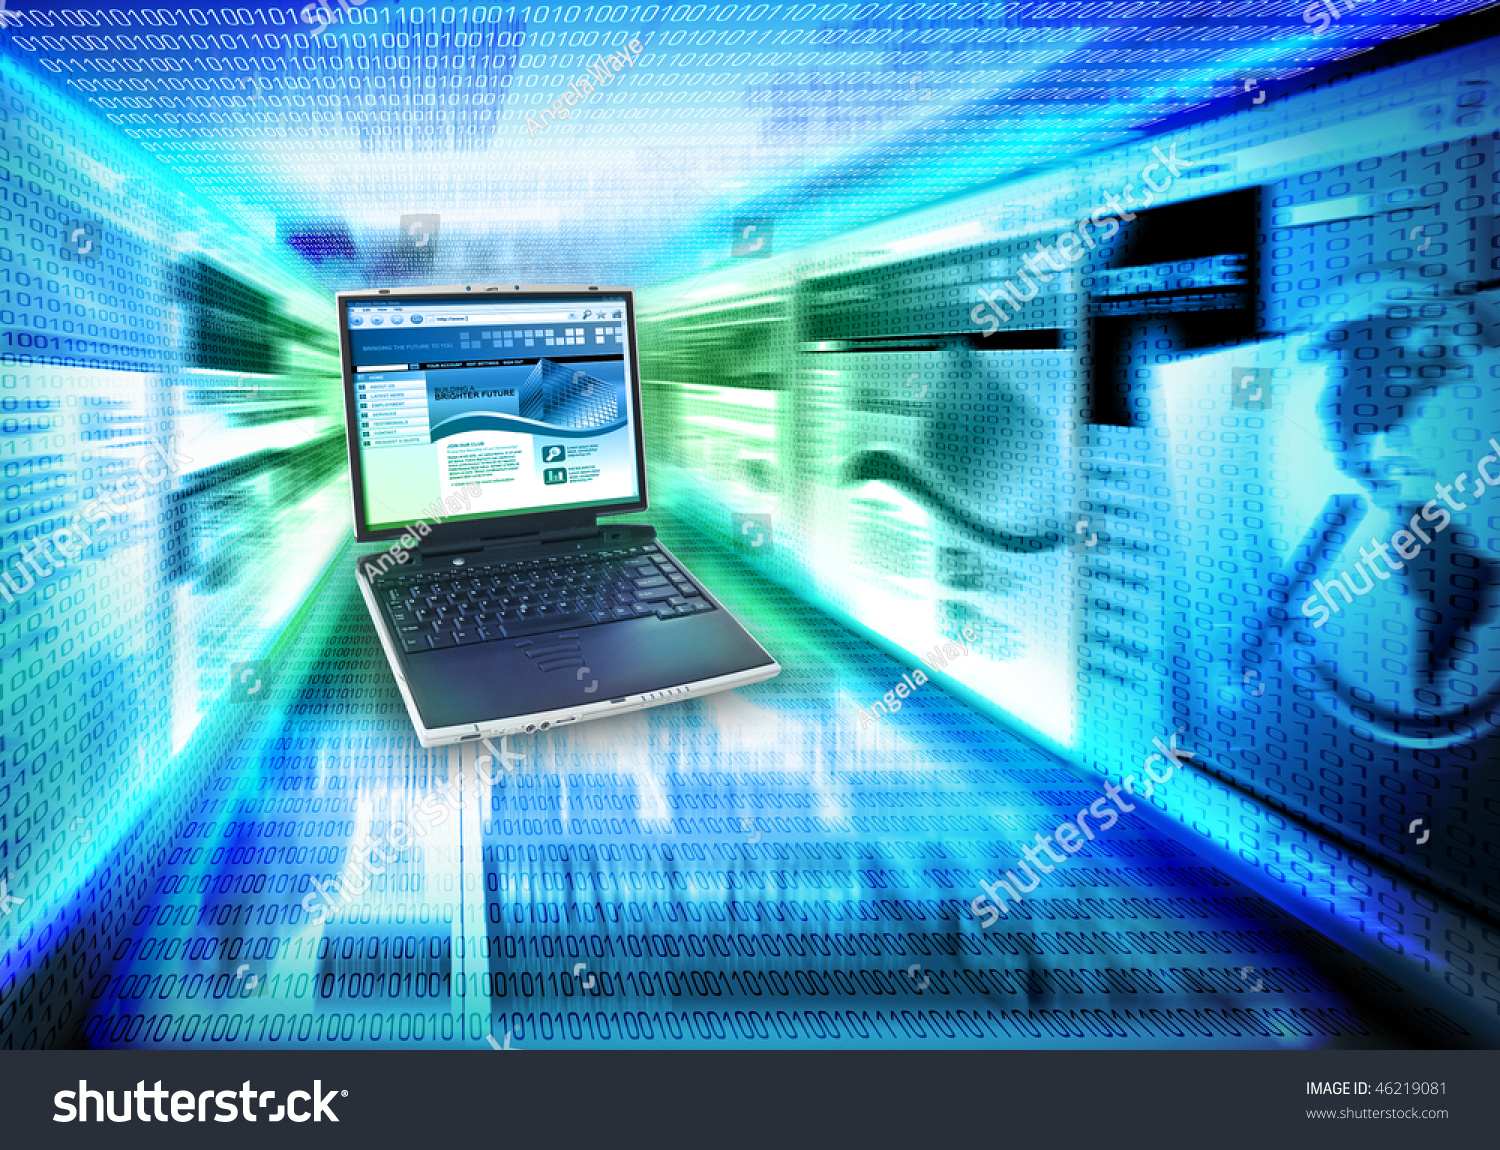 computer and technology Computer technology for developing areas is often through the donation of technology to developing areas without thought for access to electricity or equipment maintenance many institutions, government, charitable, and for-profit organizations require technology development often involving hardware or software design, and the coordination of.